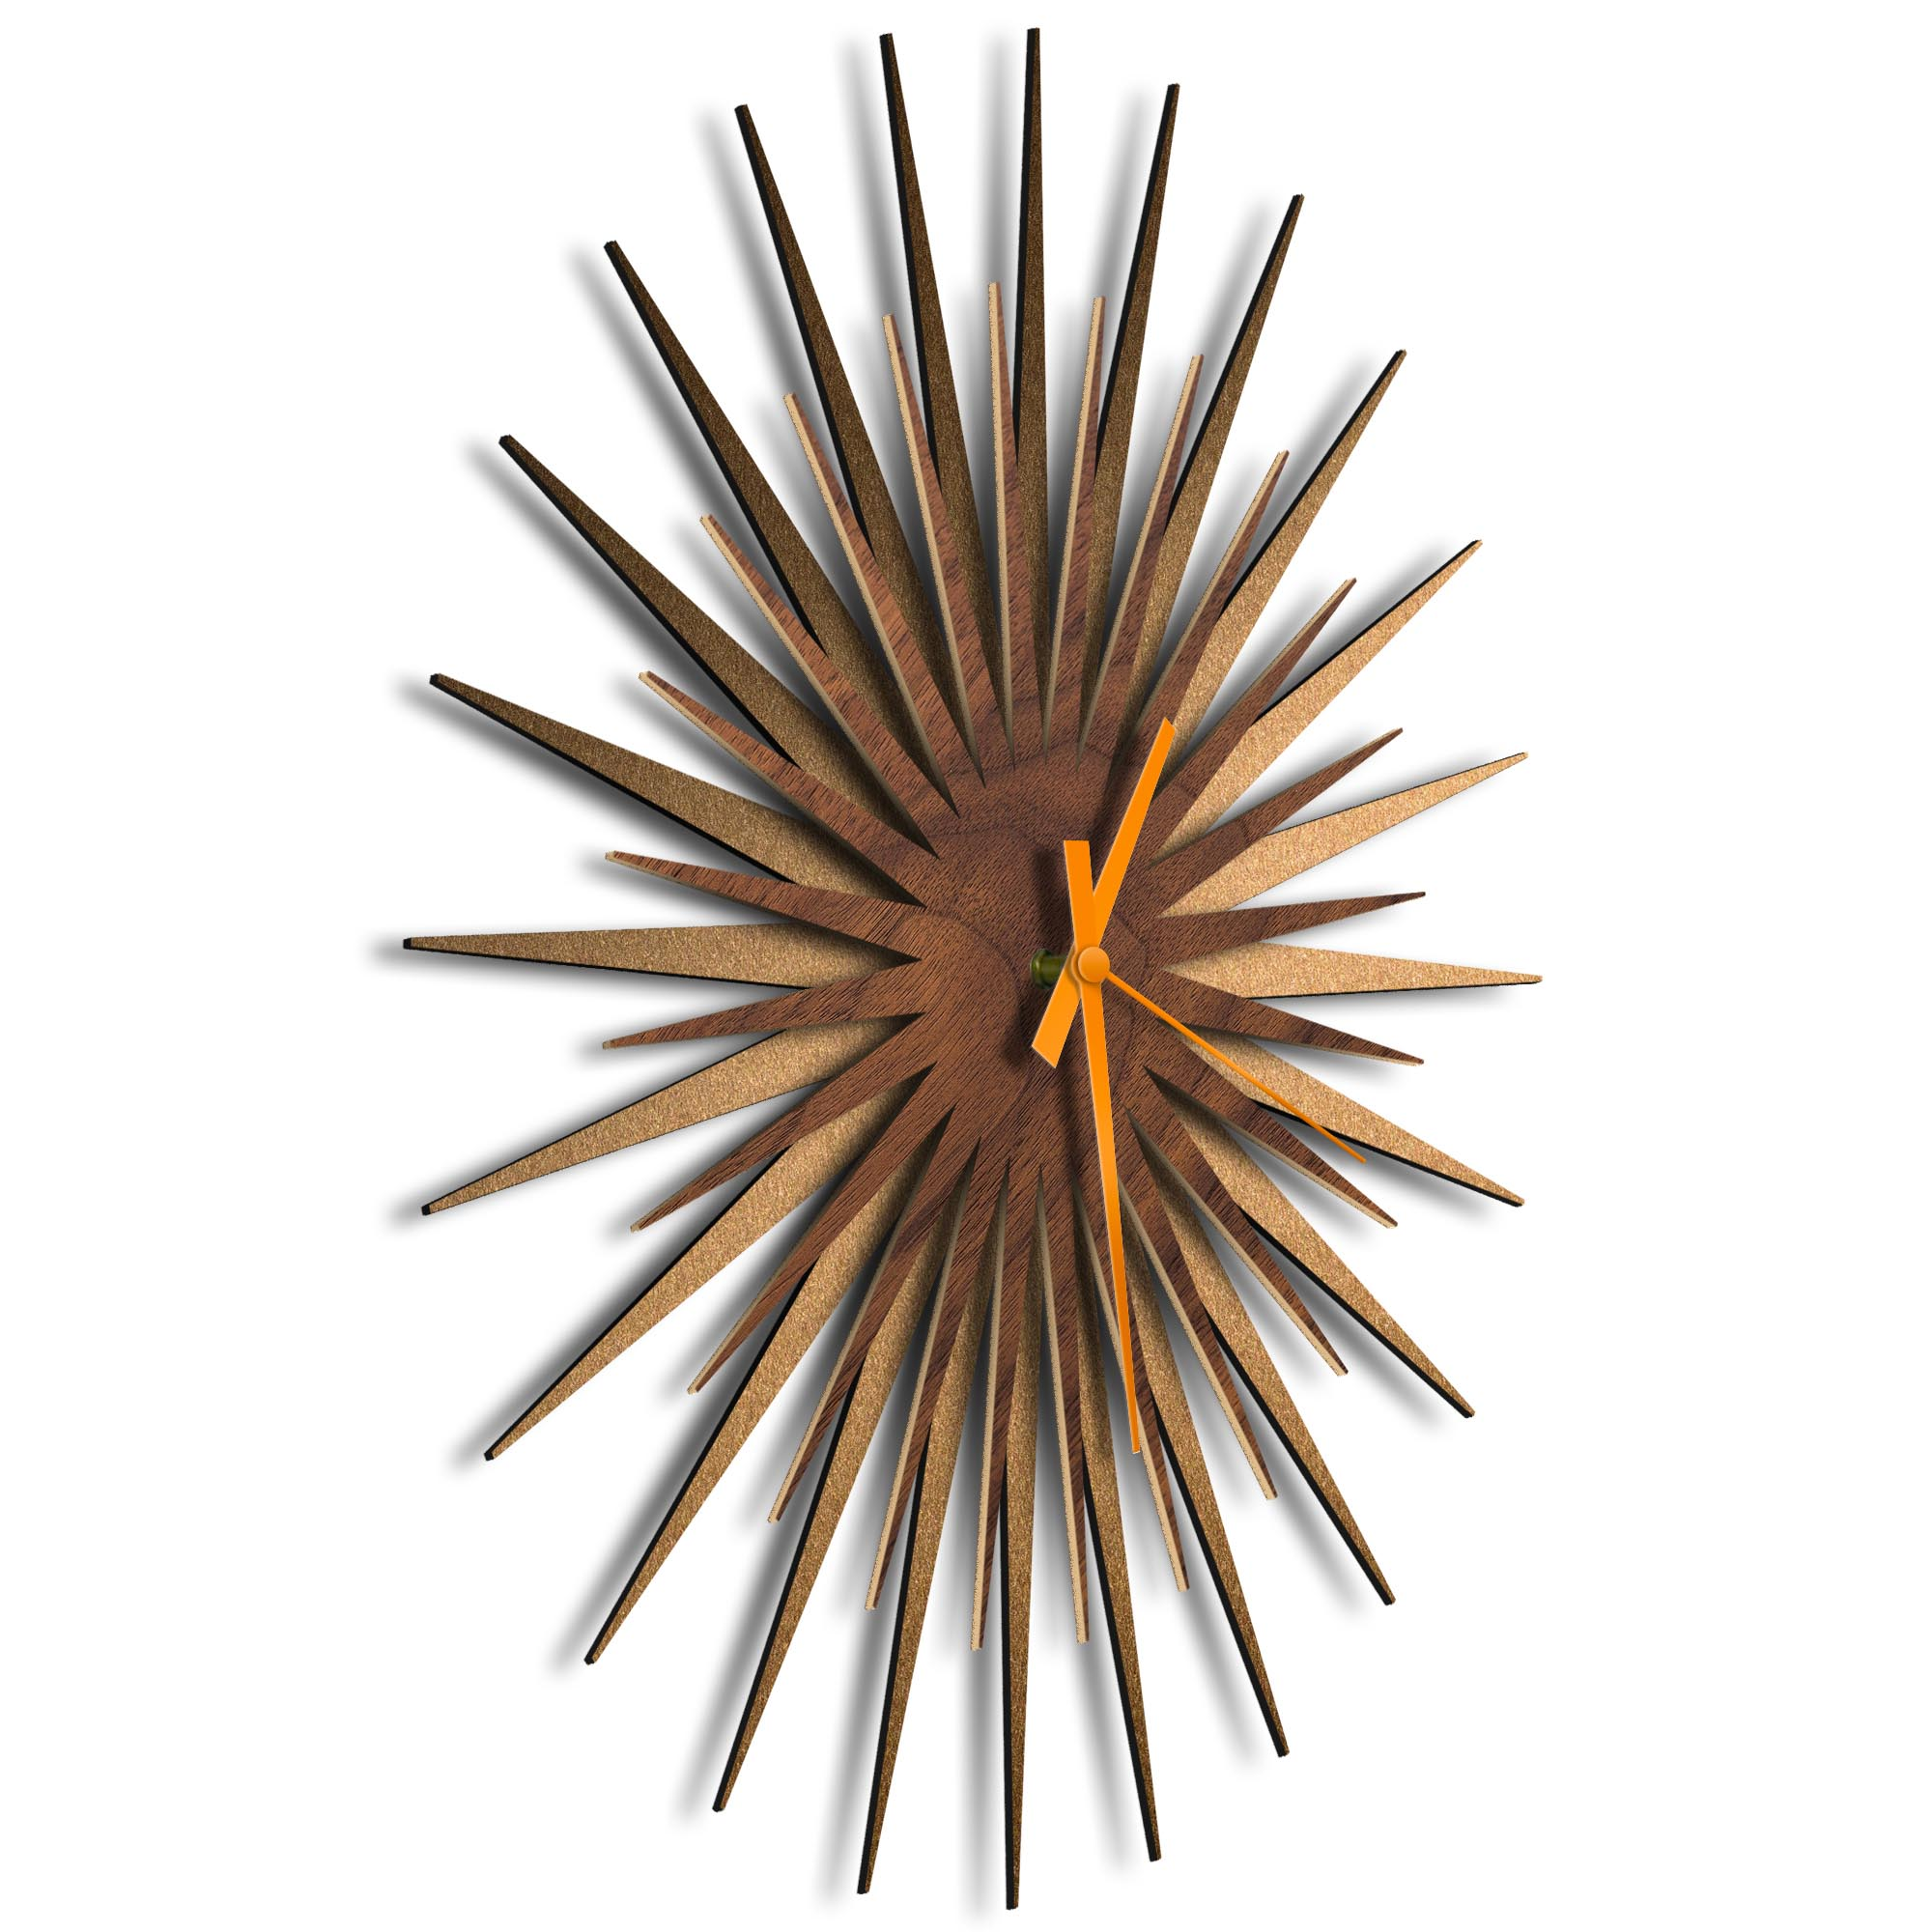 Atomic Era Clock Bronze Walnut Orange by Adam Schwoeppe - Mid-Century Modern Clock on Brushed Bronze Polymetal - Image 2